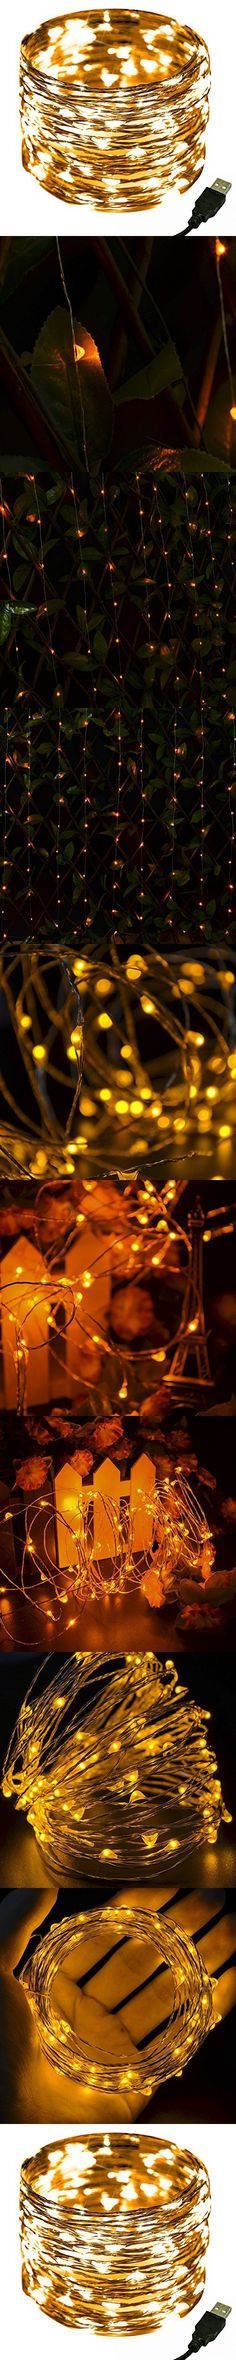 Light Ropes And Strings Amusing Warm White Led Rope Light  *lighting  Light Ropes & Strings